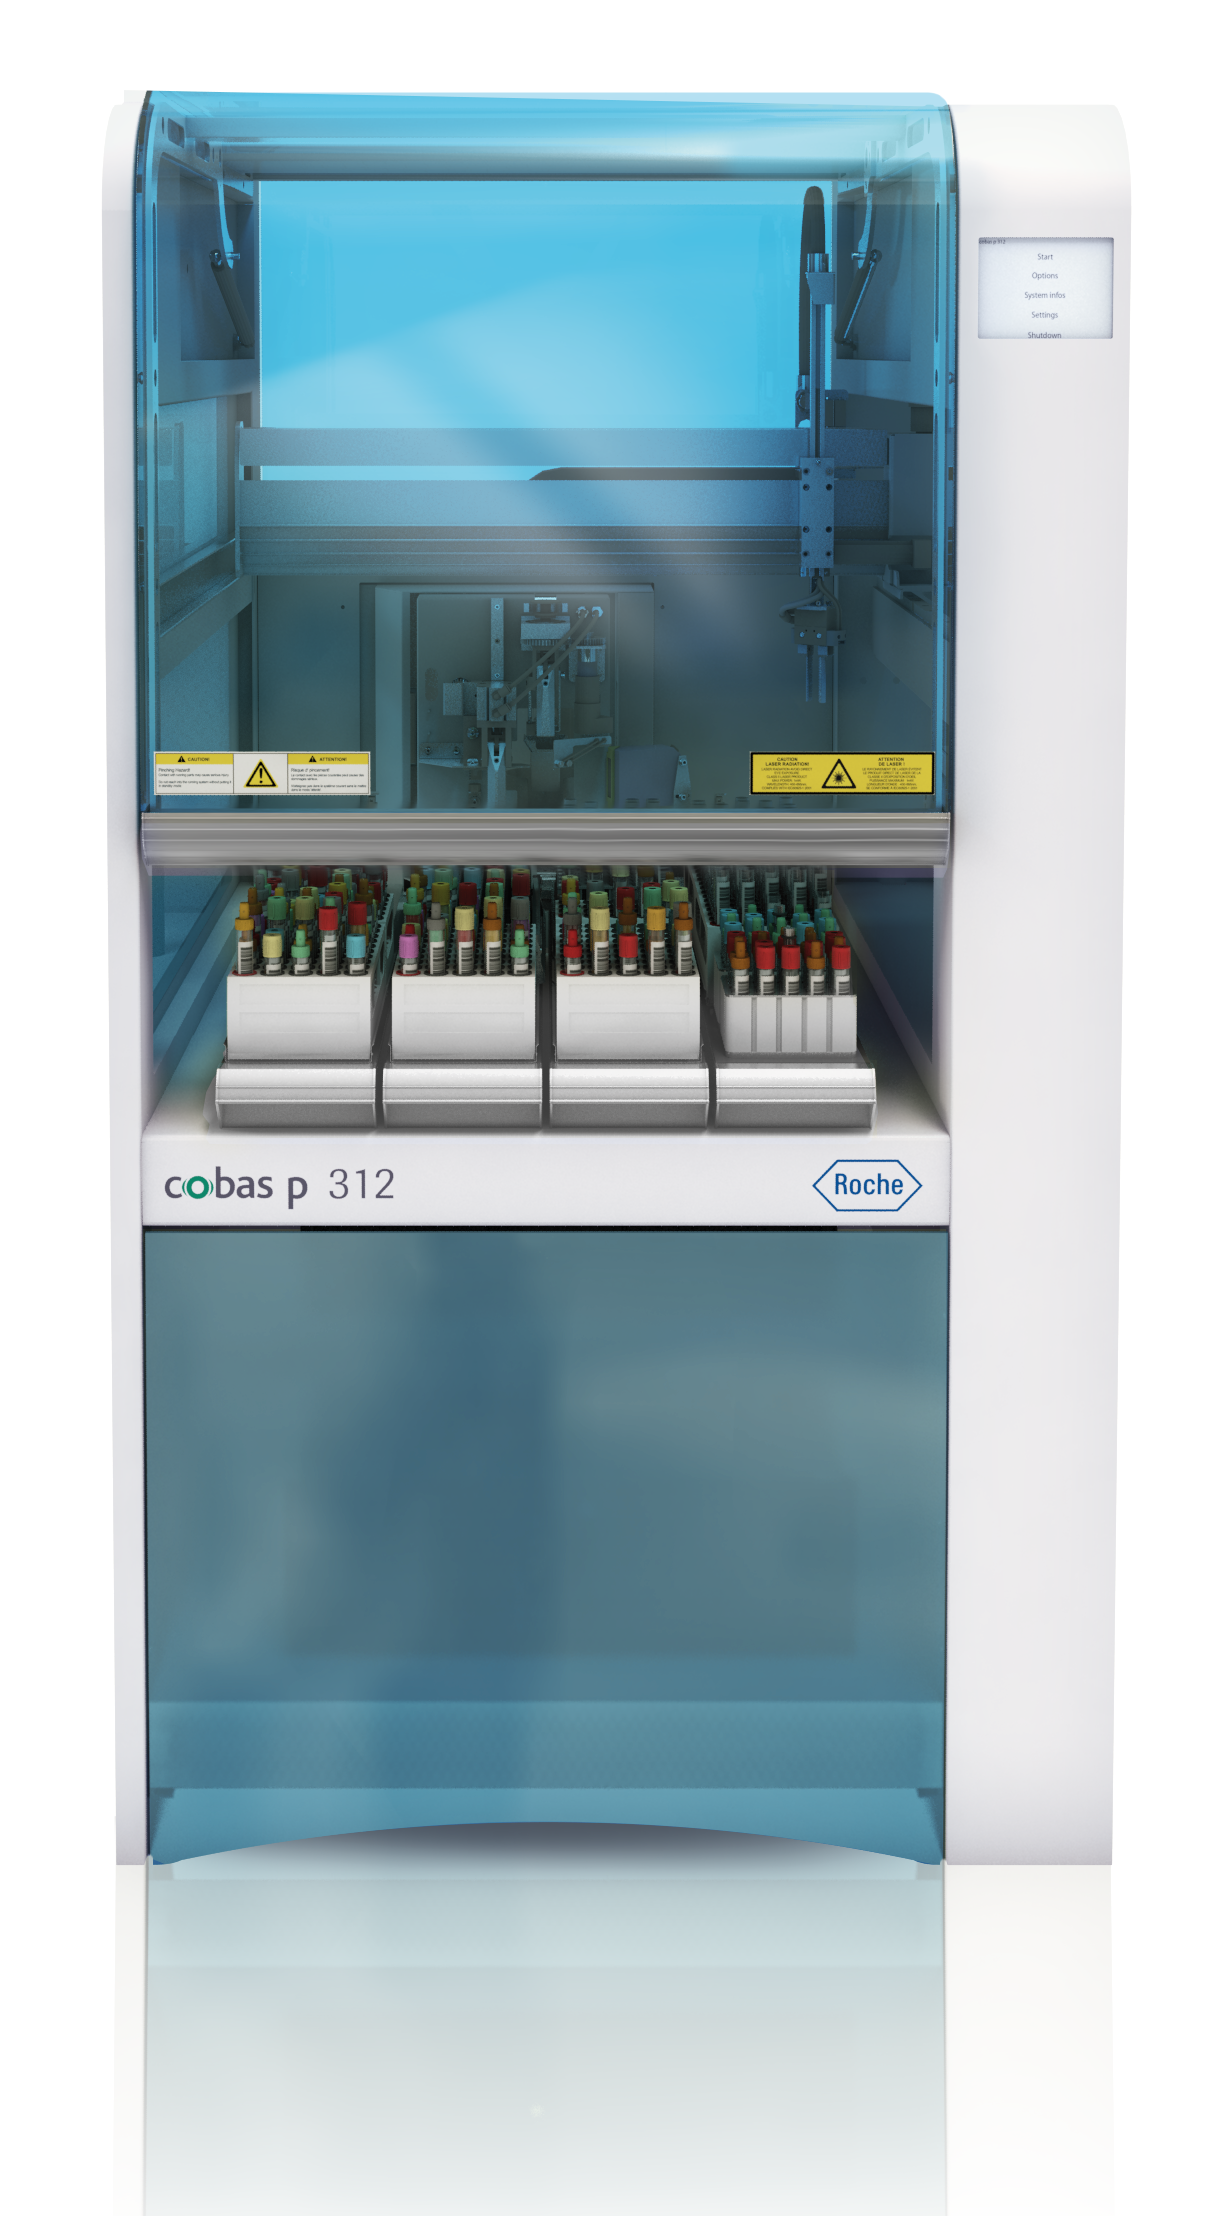 Product image for cobas p 312 pre-analytical system